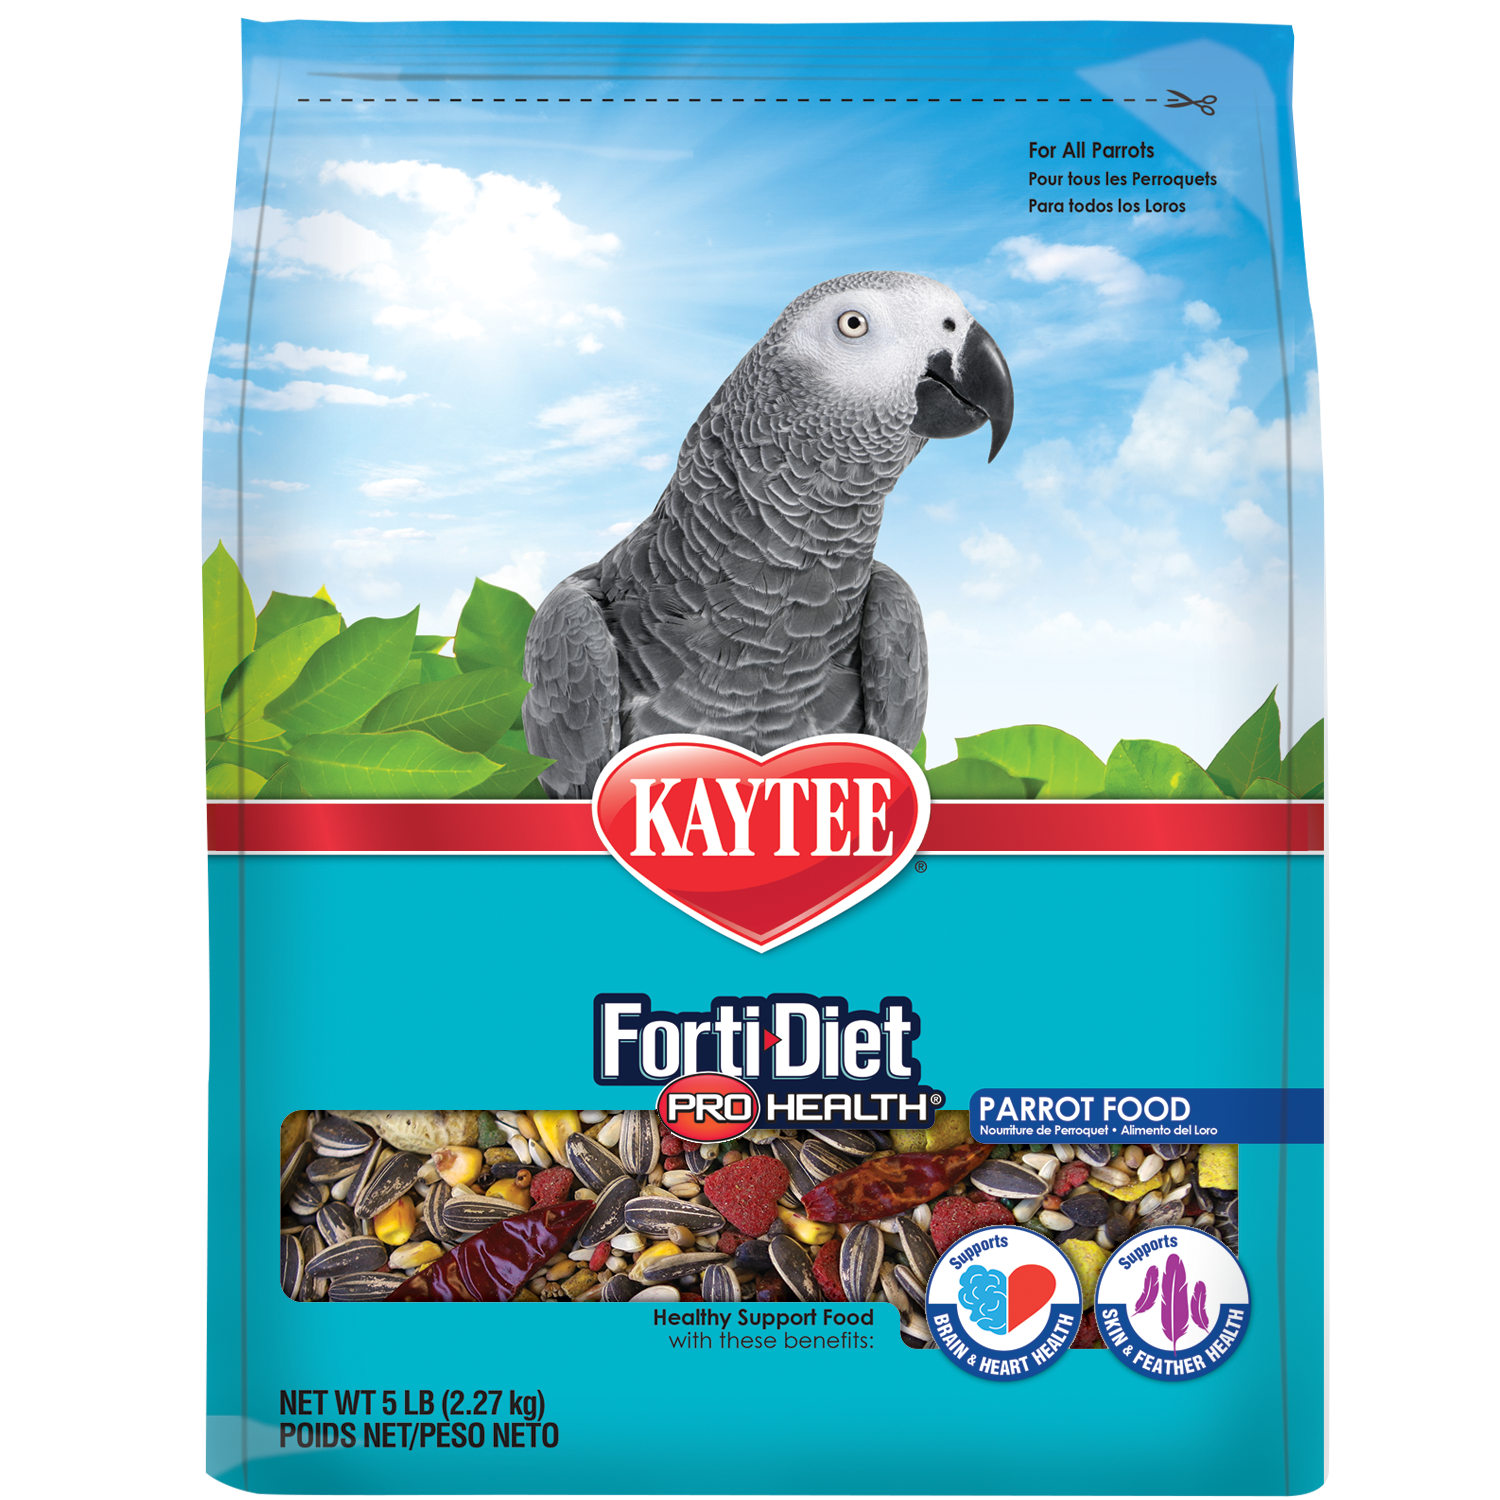 Forti-Diet Pro Health Parrot Food